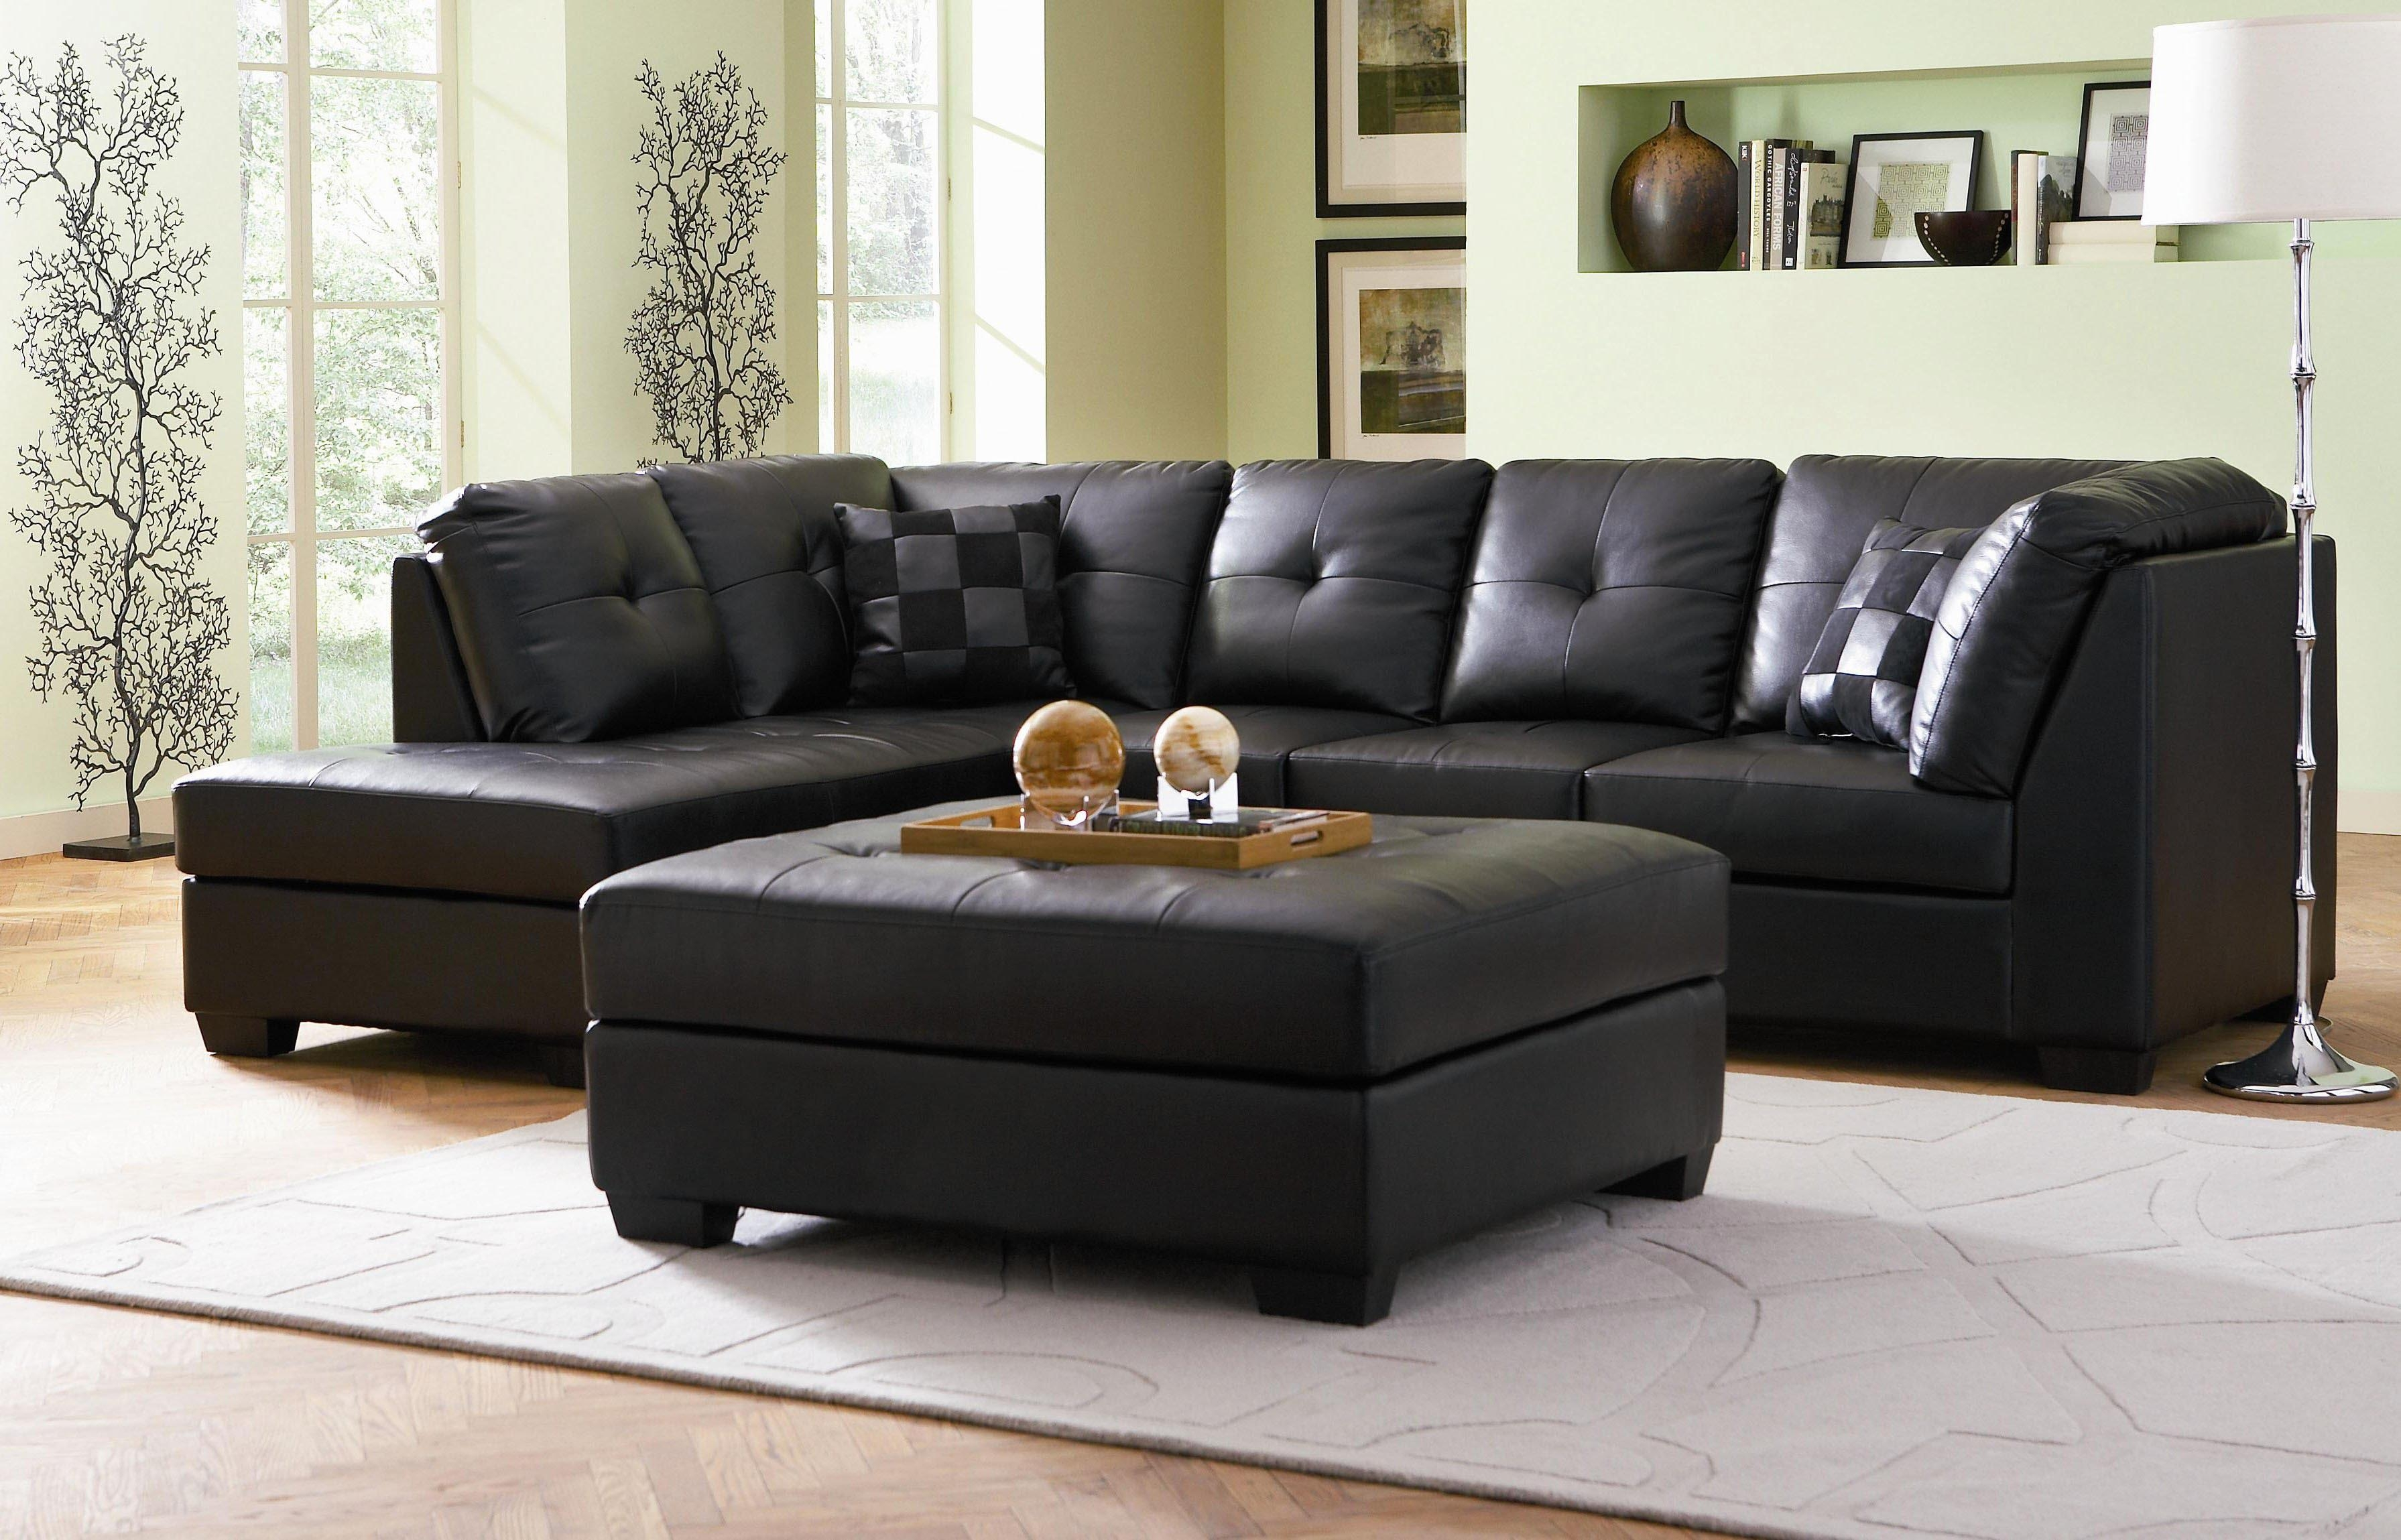 Sofas Center : Cheap Sectional Sofas For Sale Amazon Sofa Sets Pertaining To Houston Sectional Sofa (View 4 of 20)